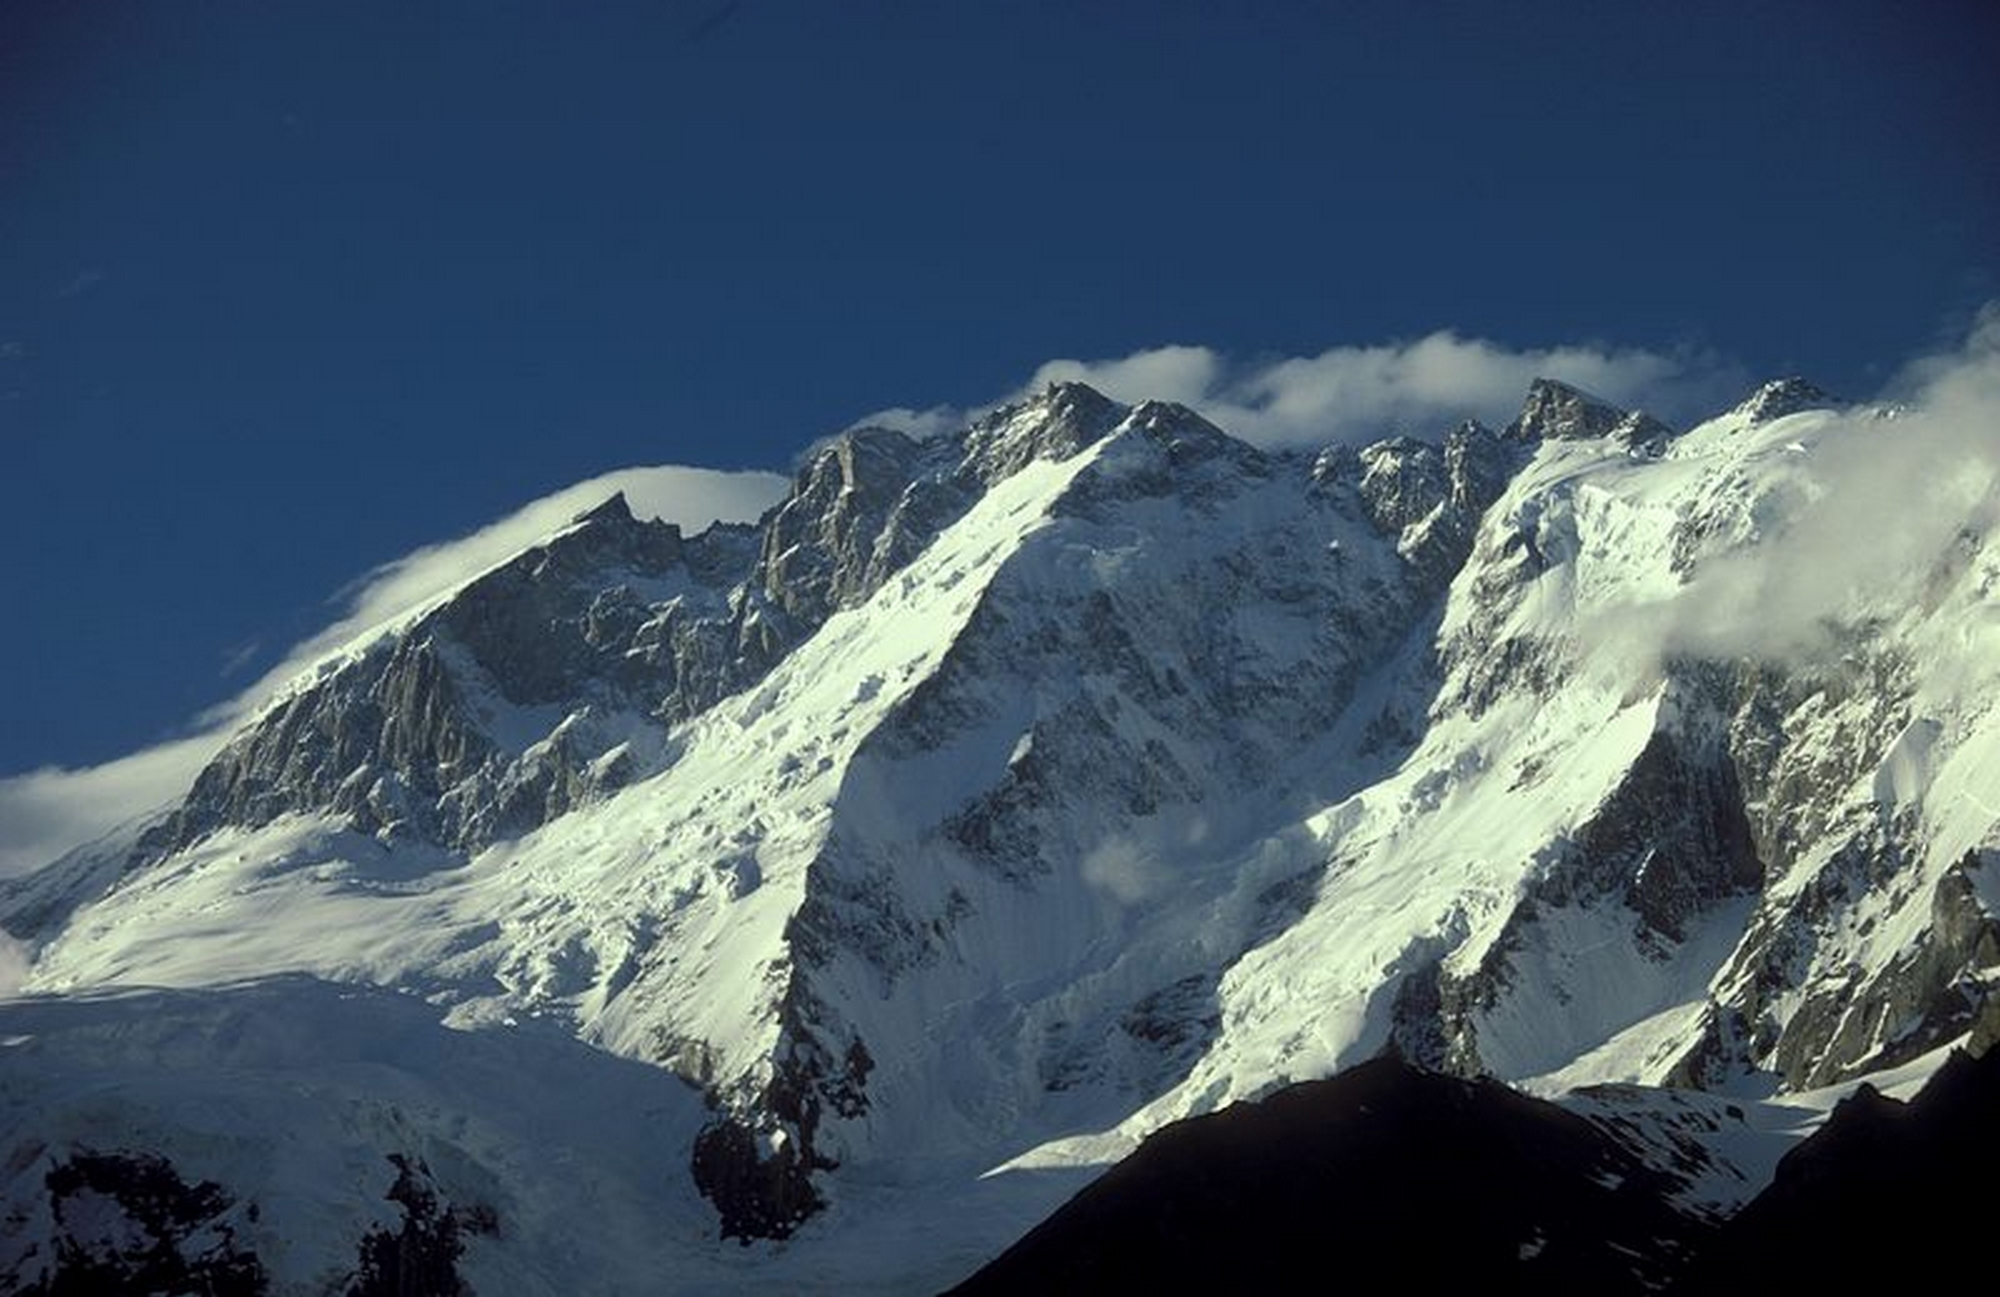 Batura-I Peak 7,785 M Expedition